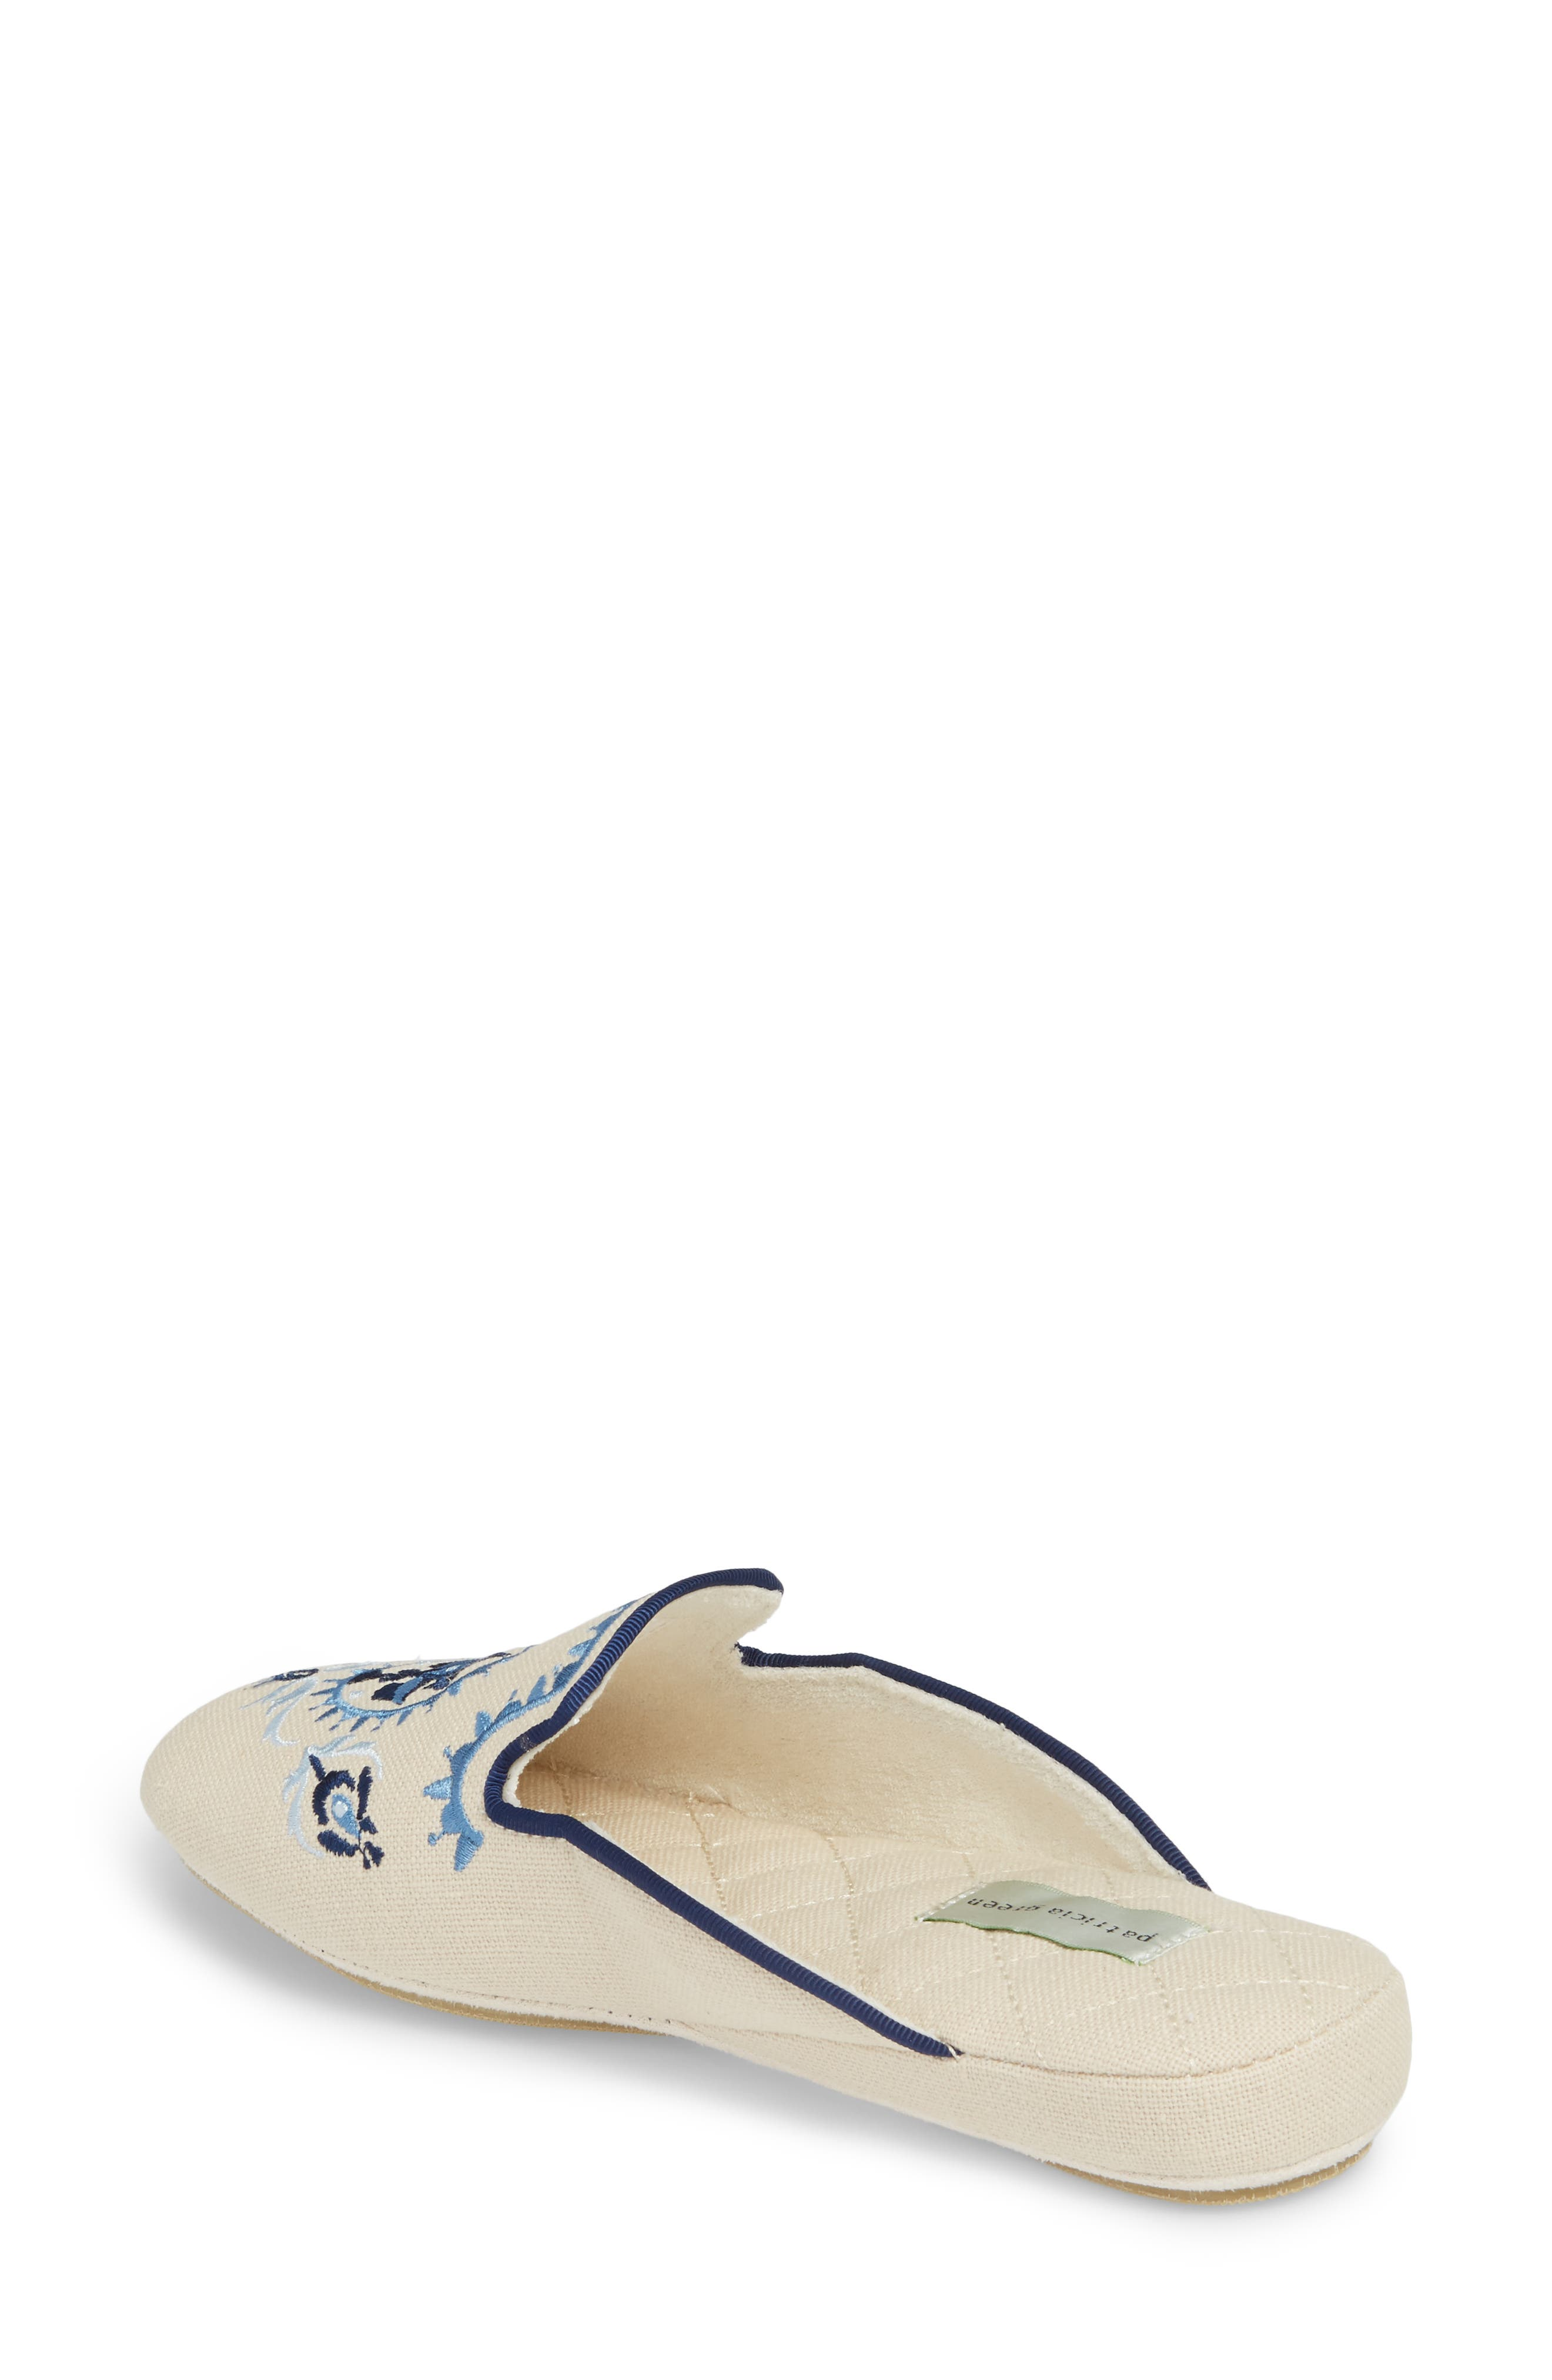 Rosa Embroidered Slipper,                             Alternate thumbnail 2, color,                             Blue Fabric